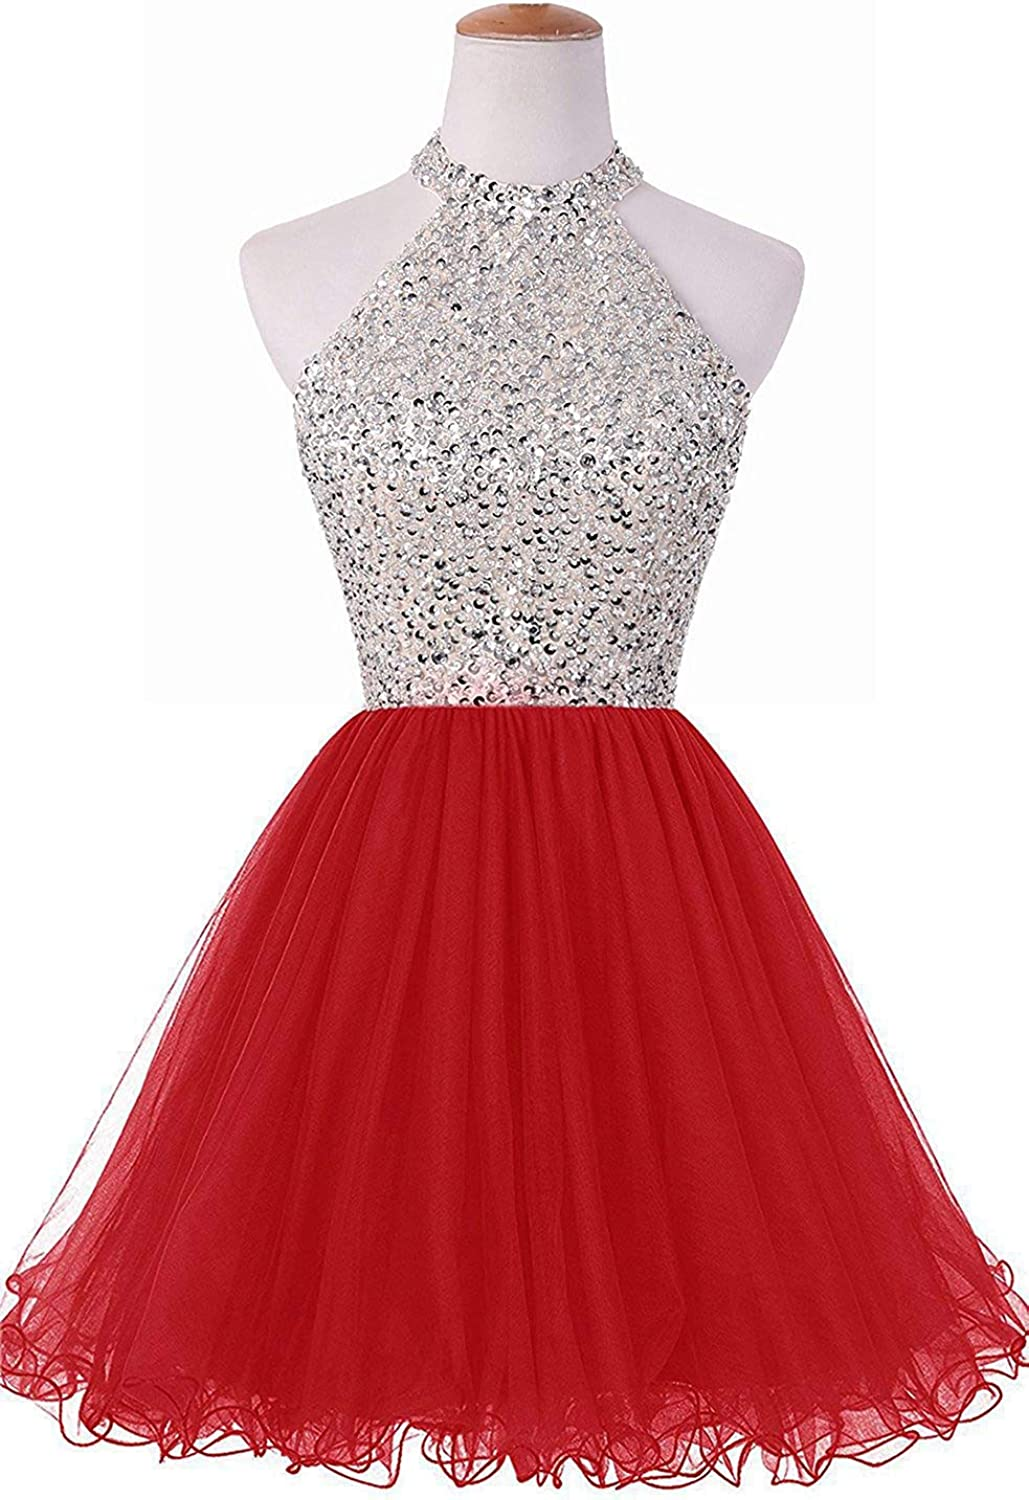 Uther Short Cocktail Party Dress Beading Prom Gowns Juniors Sequins Homecoming Dresses